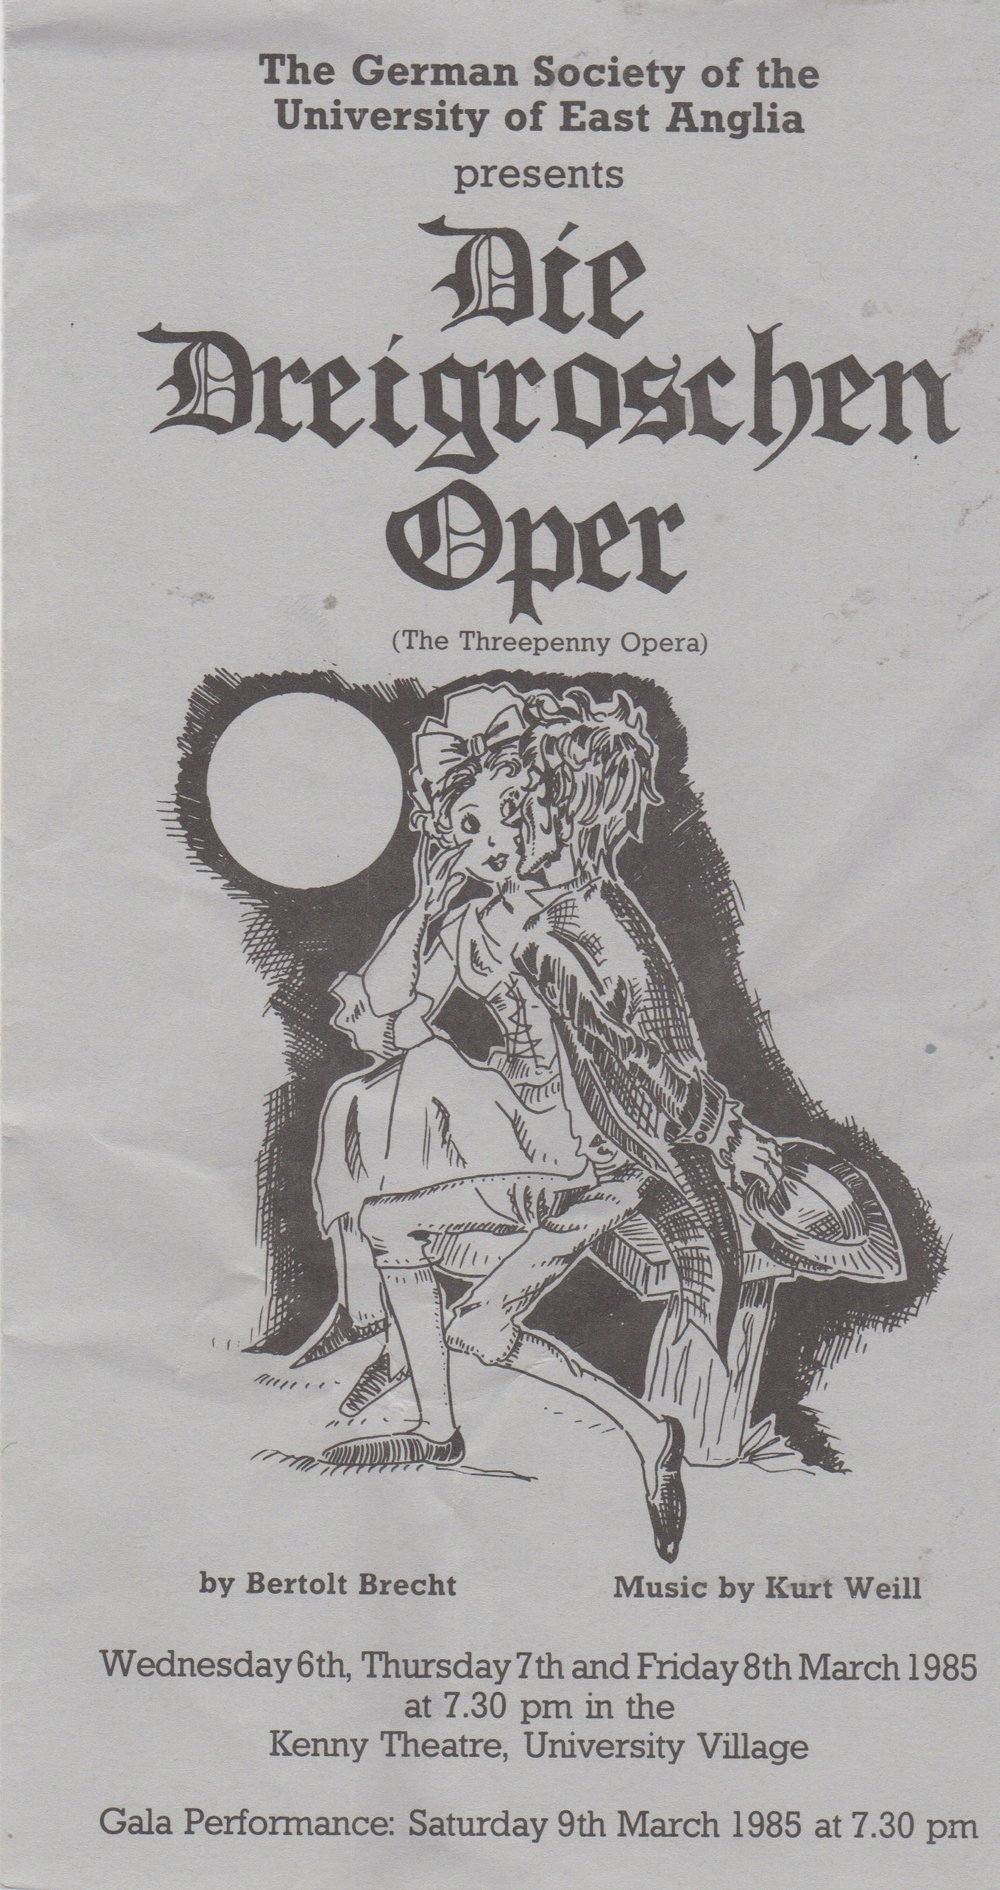 german theepenny opera.jpeg